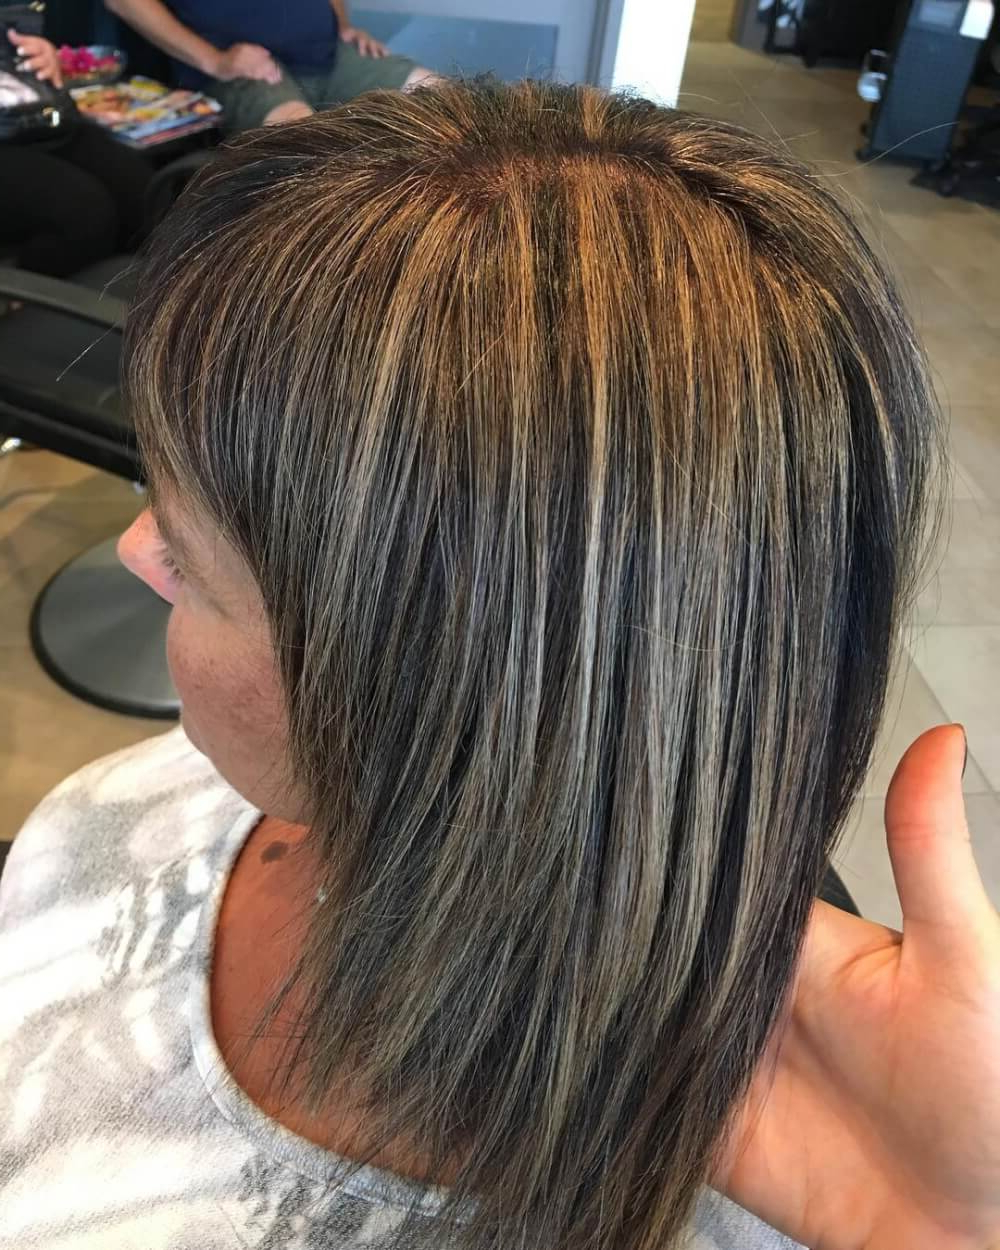 38 Top Blonde Highlights Of 2019 – Platinum, Ash, Dirty Inside Piece Y Golden Bob Hairstyles With Silver Highlights (Gallery 19 of 20)